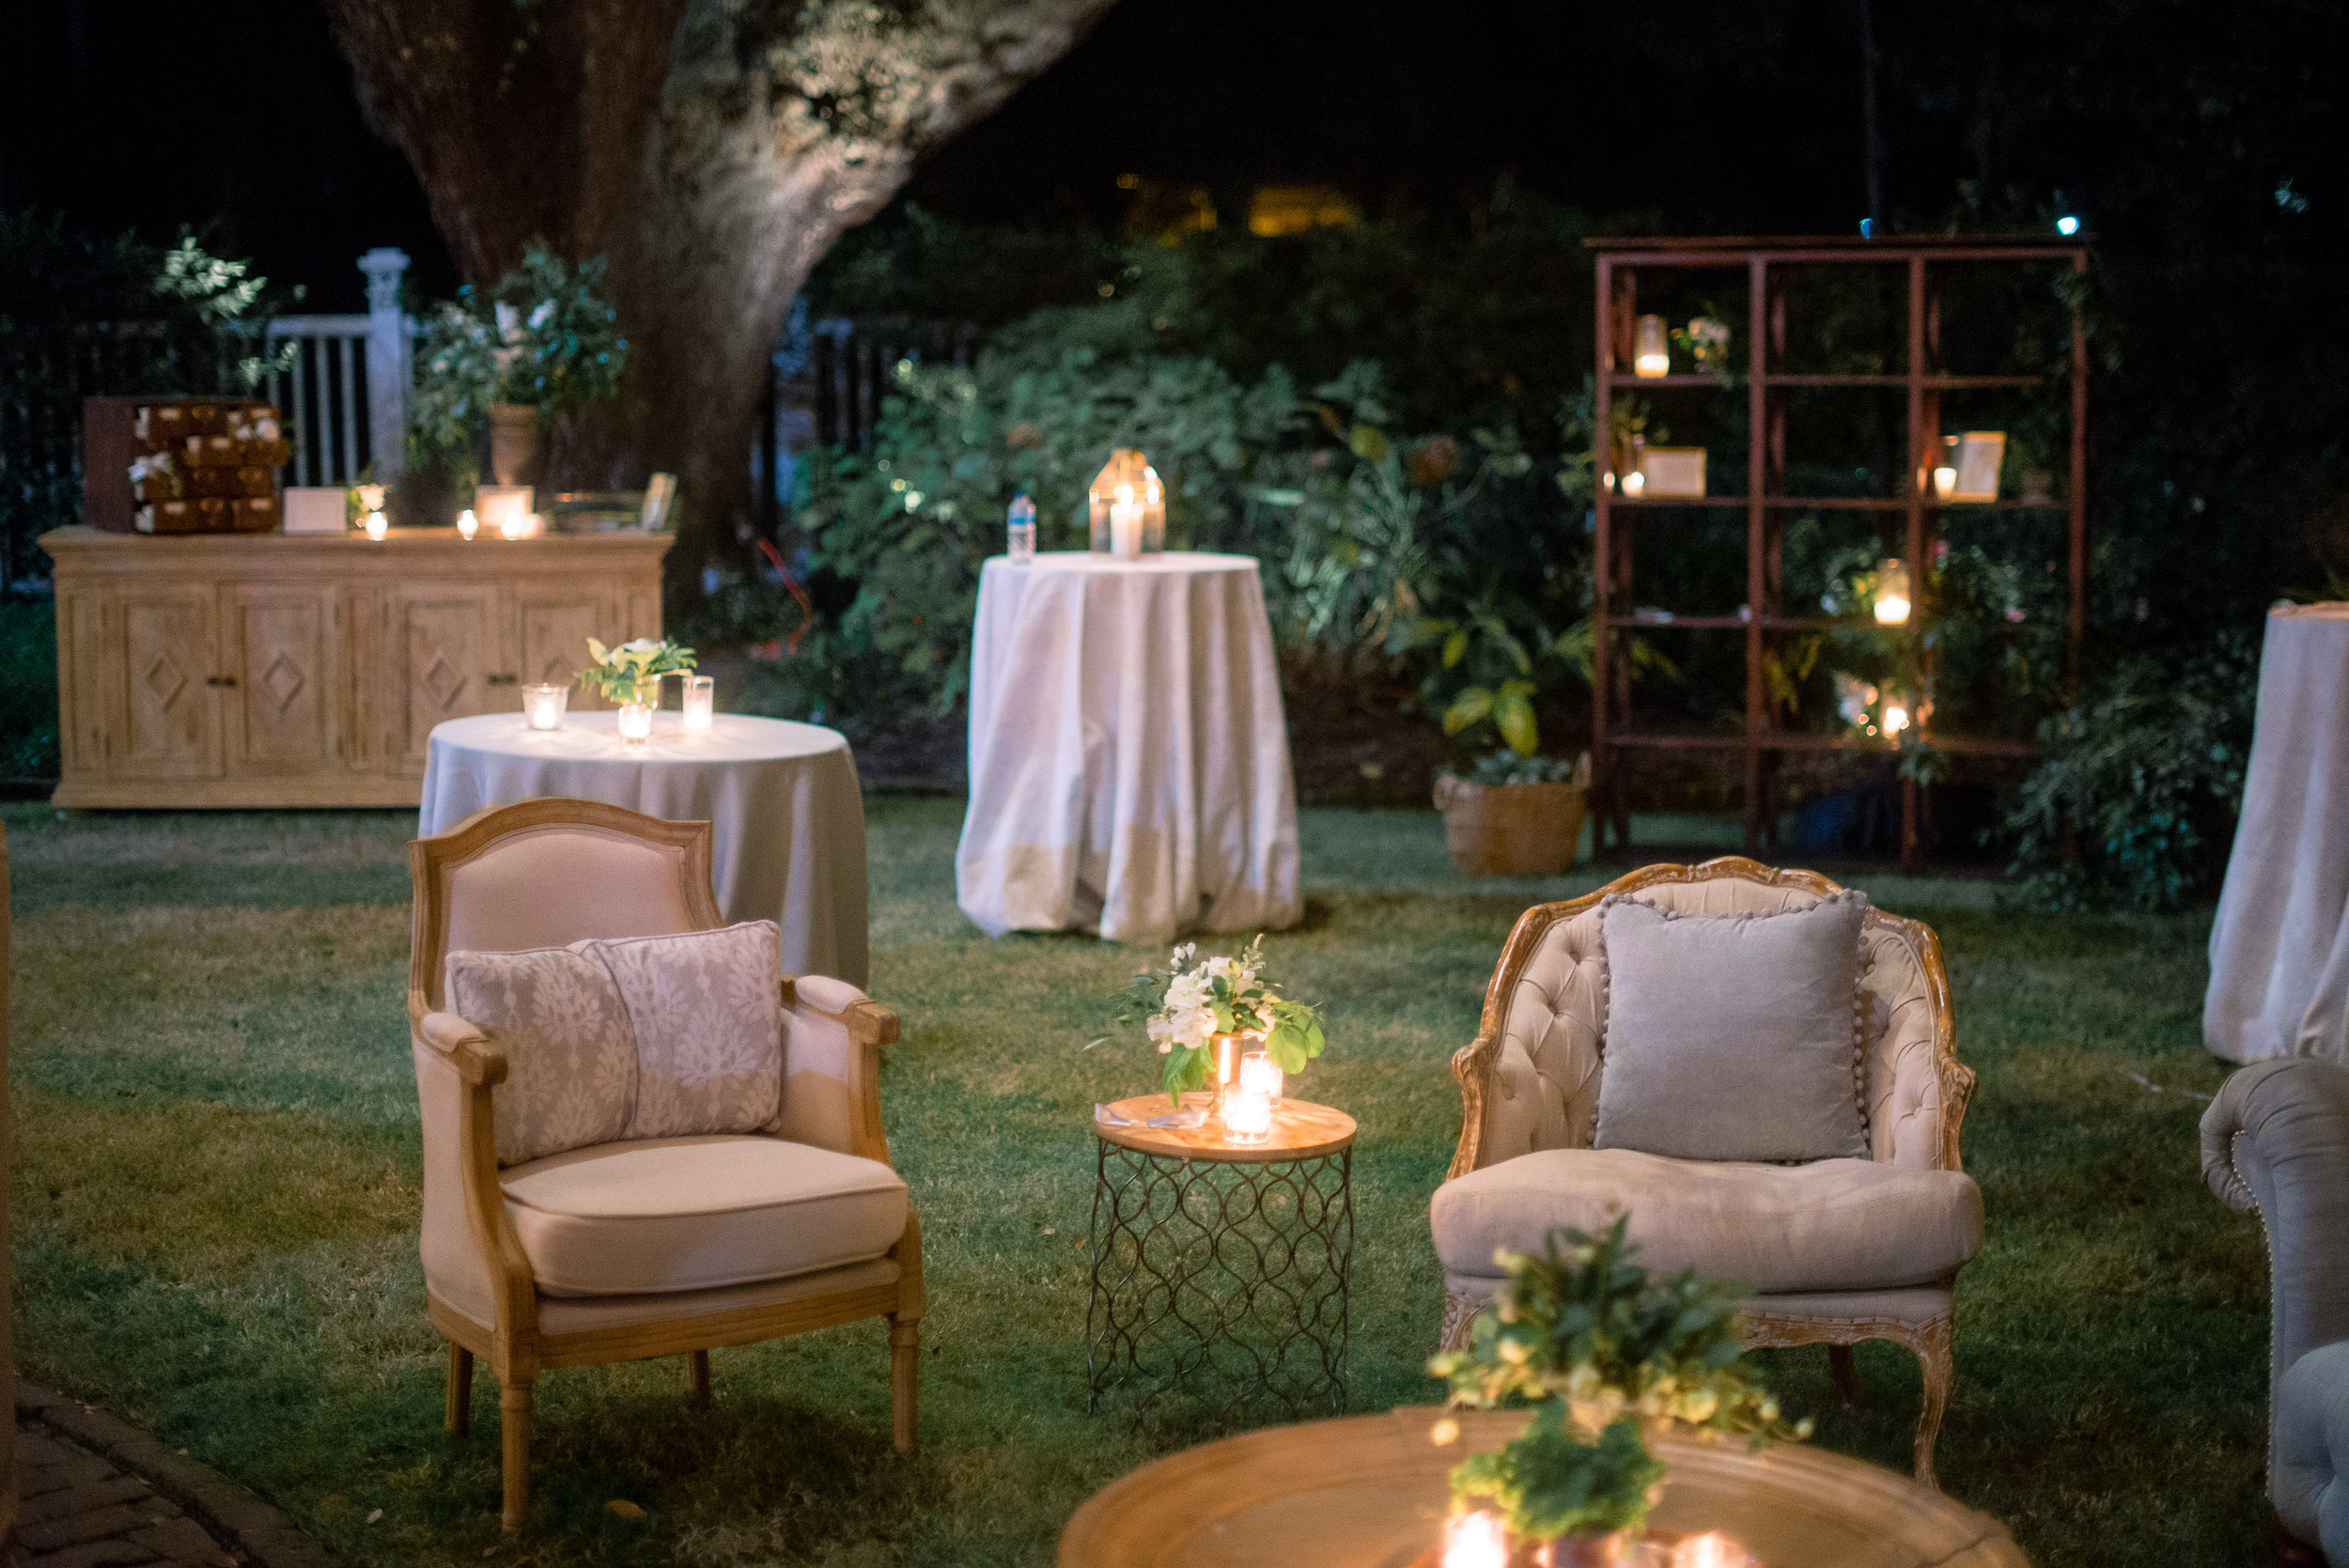 Vintage lounge furniture at evening Thomas Bennett House wedding   //  Event Planning & Design by A Charleston Bride  //  A Lowcountry Wedding Magazine & Blog